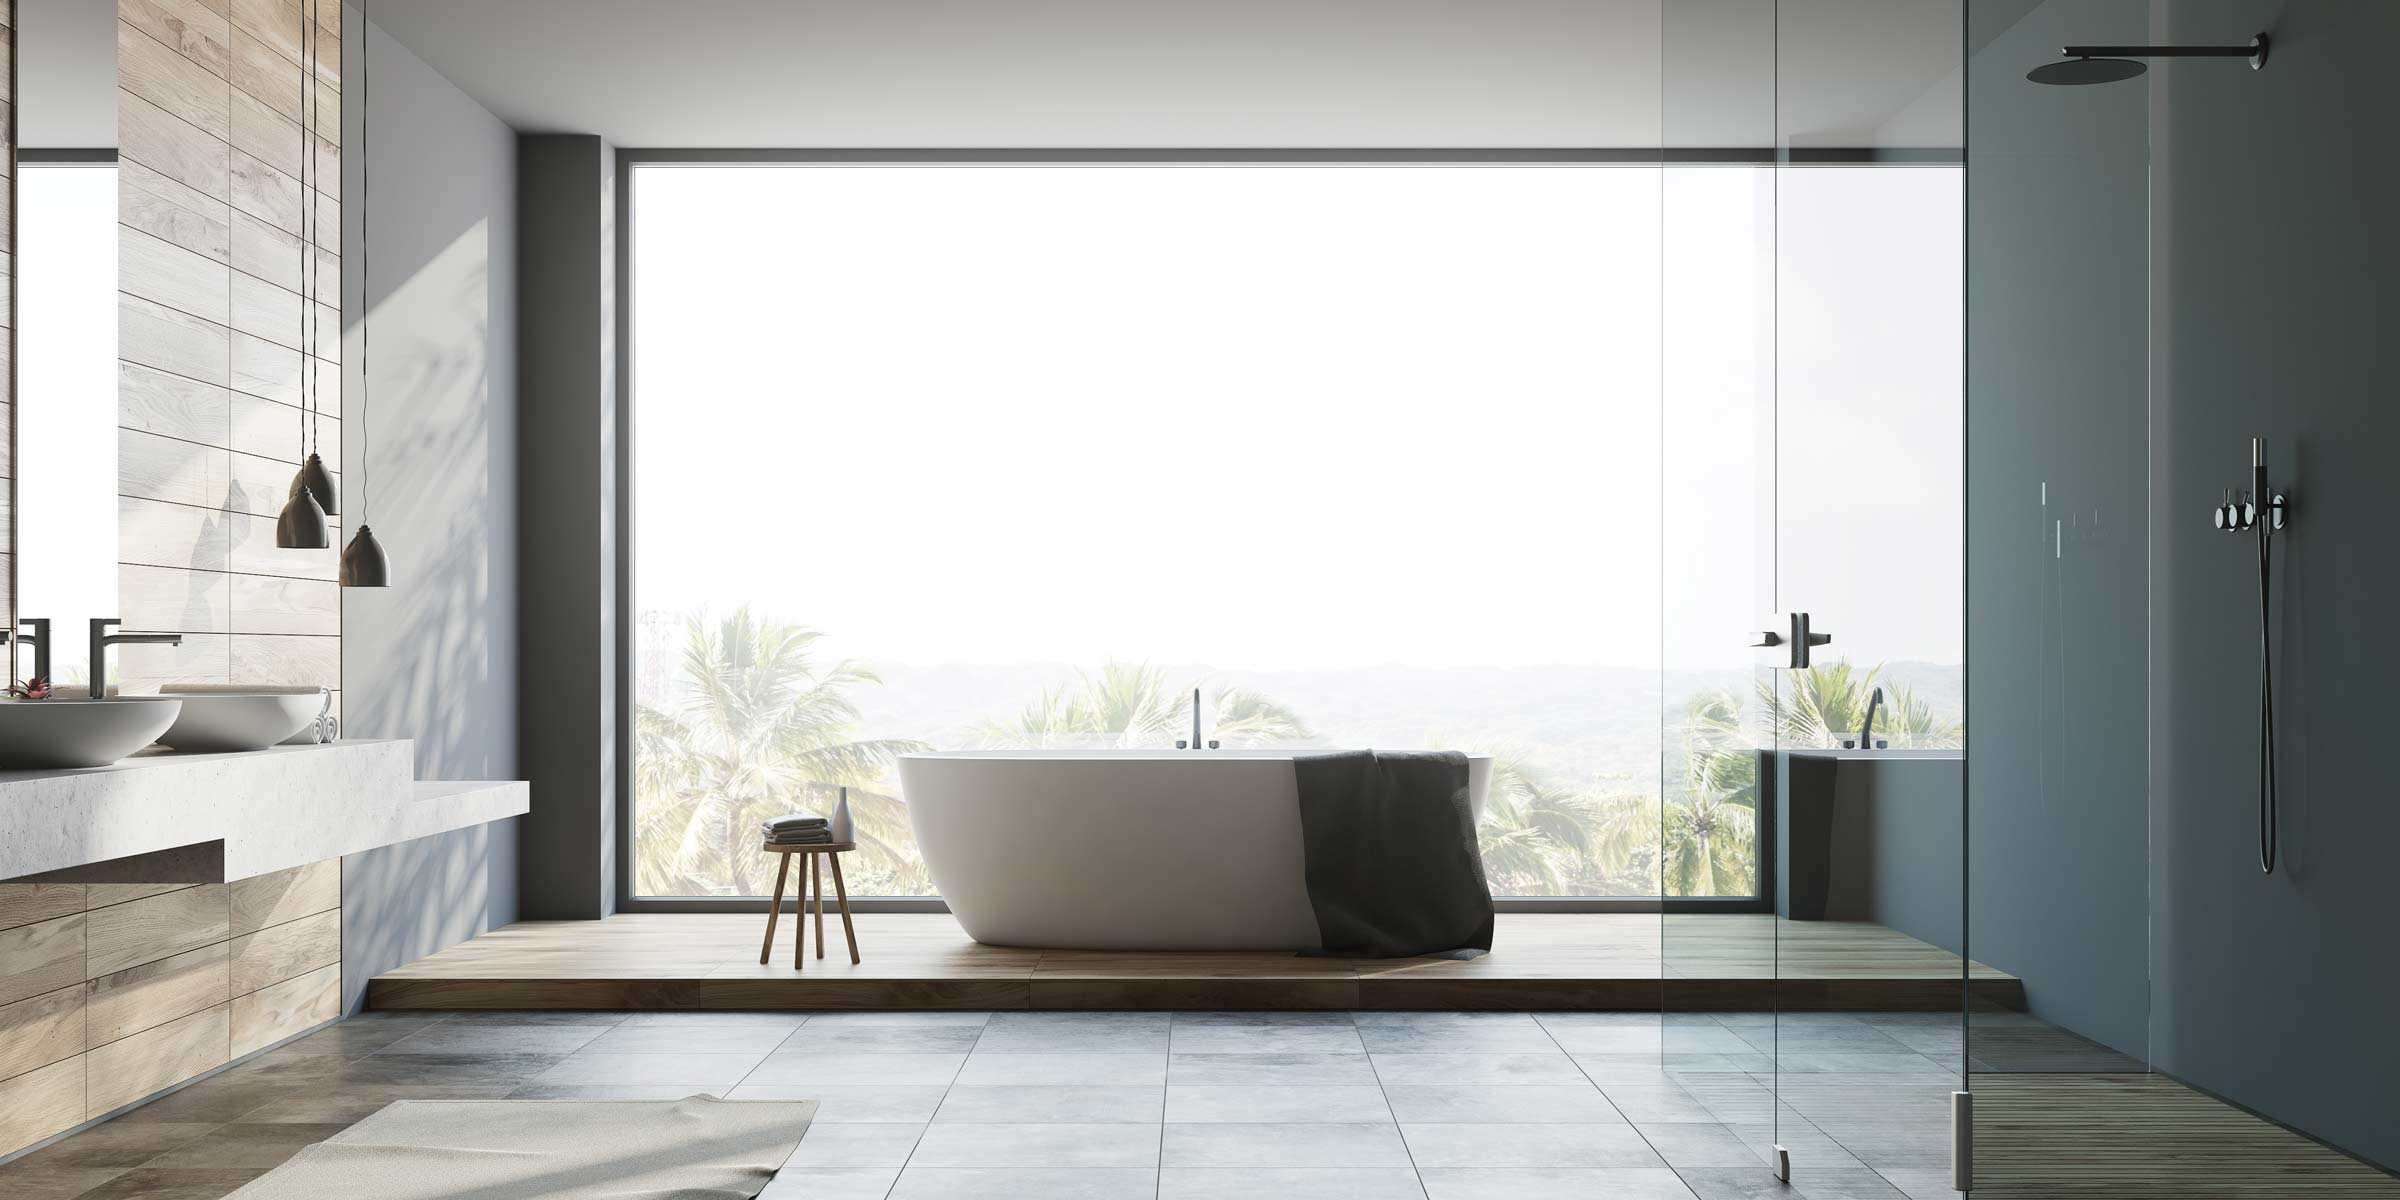 Deluxe Bathroom Renovation Costs - What You'll Get for $30,000+